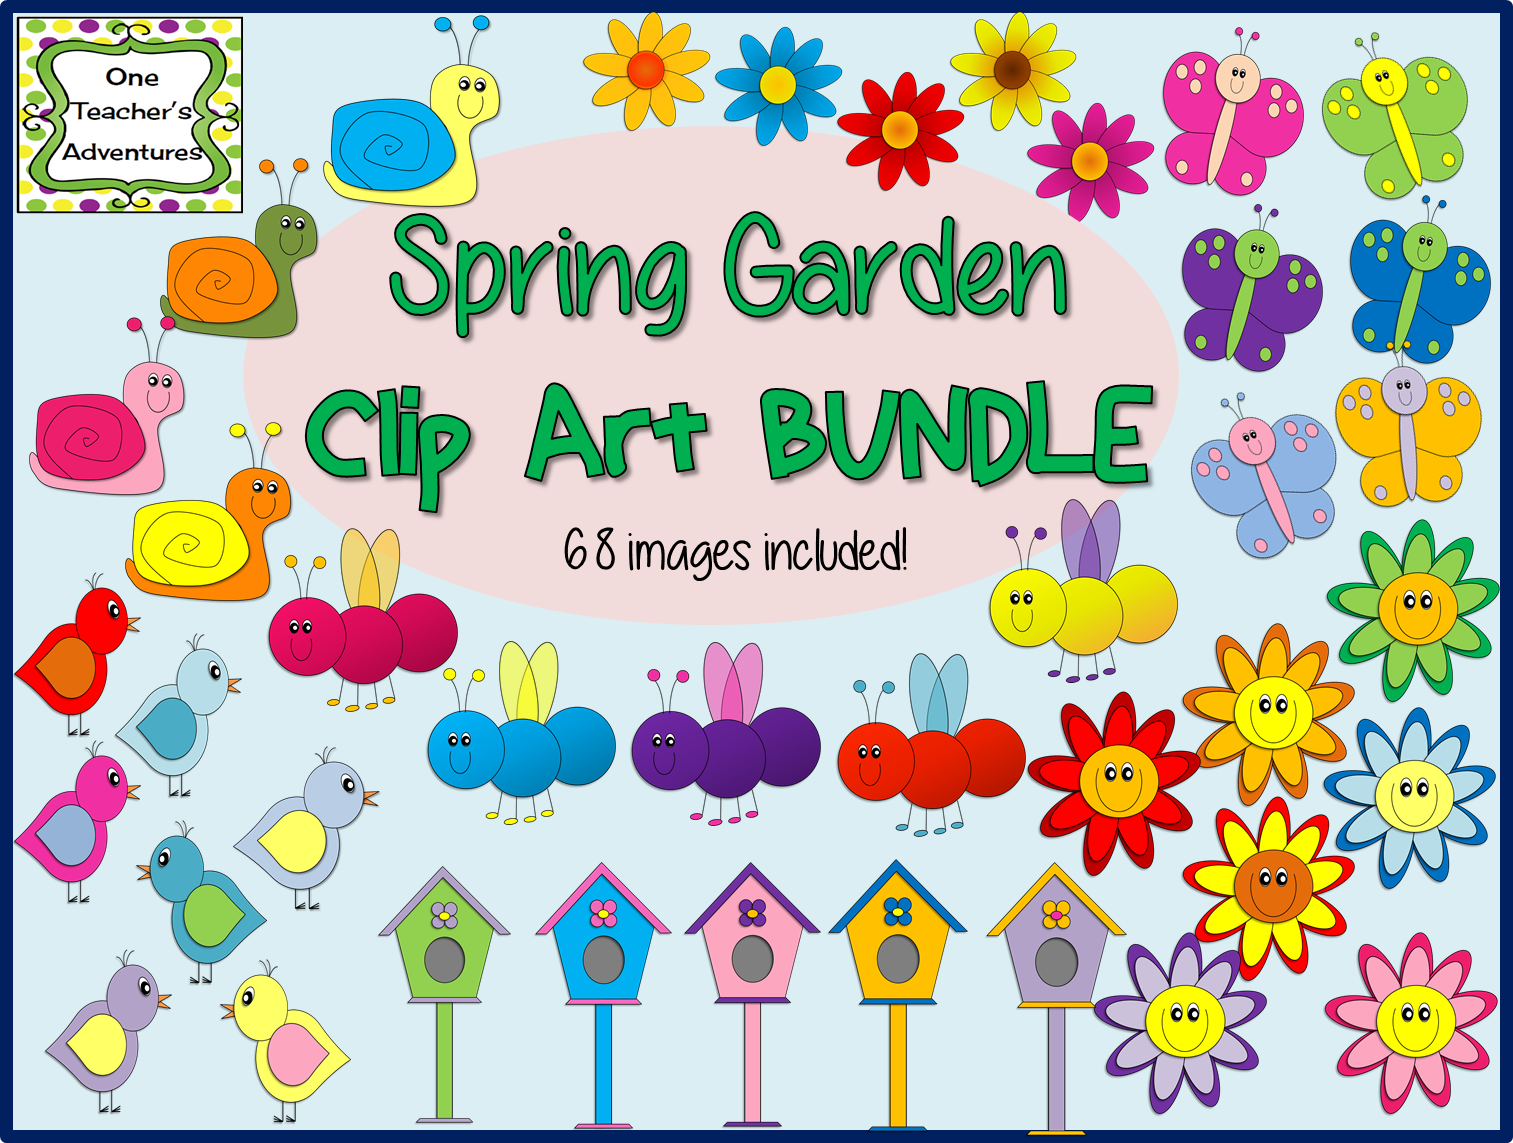 http://www.teacherspayteachers.com/Product/Spring-Garden-Clip-Art-Bundle-1396915